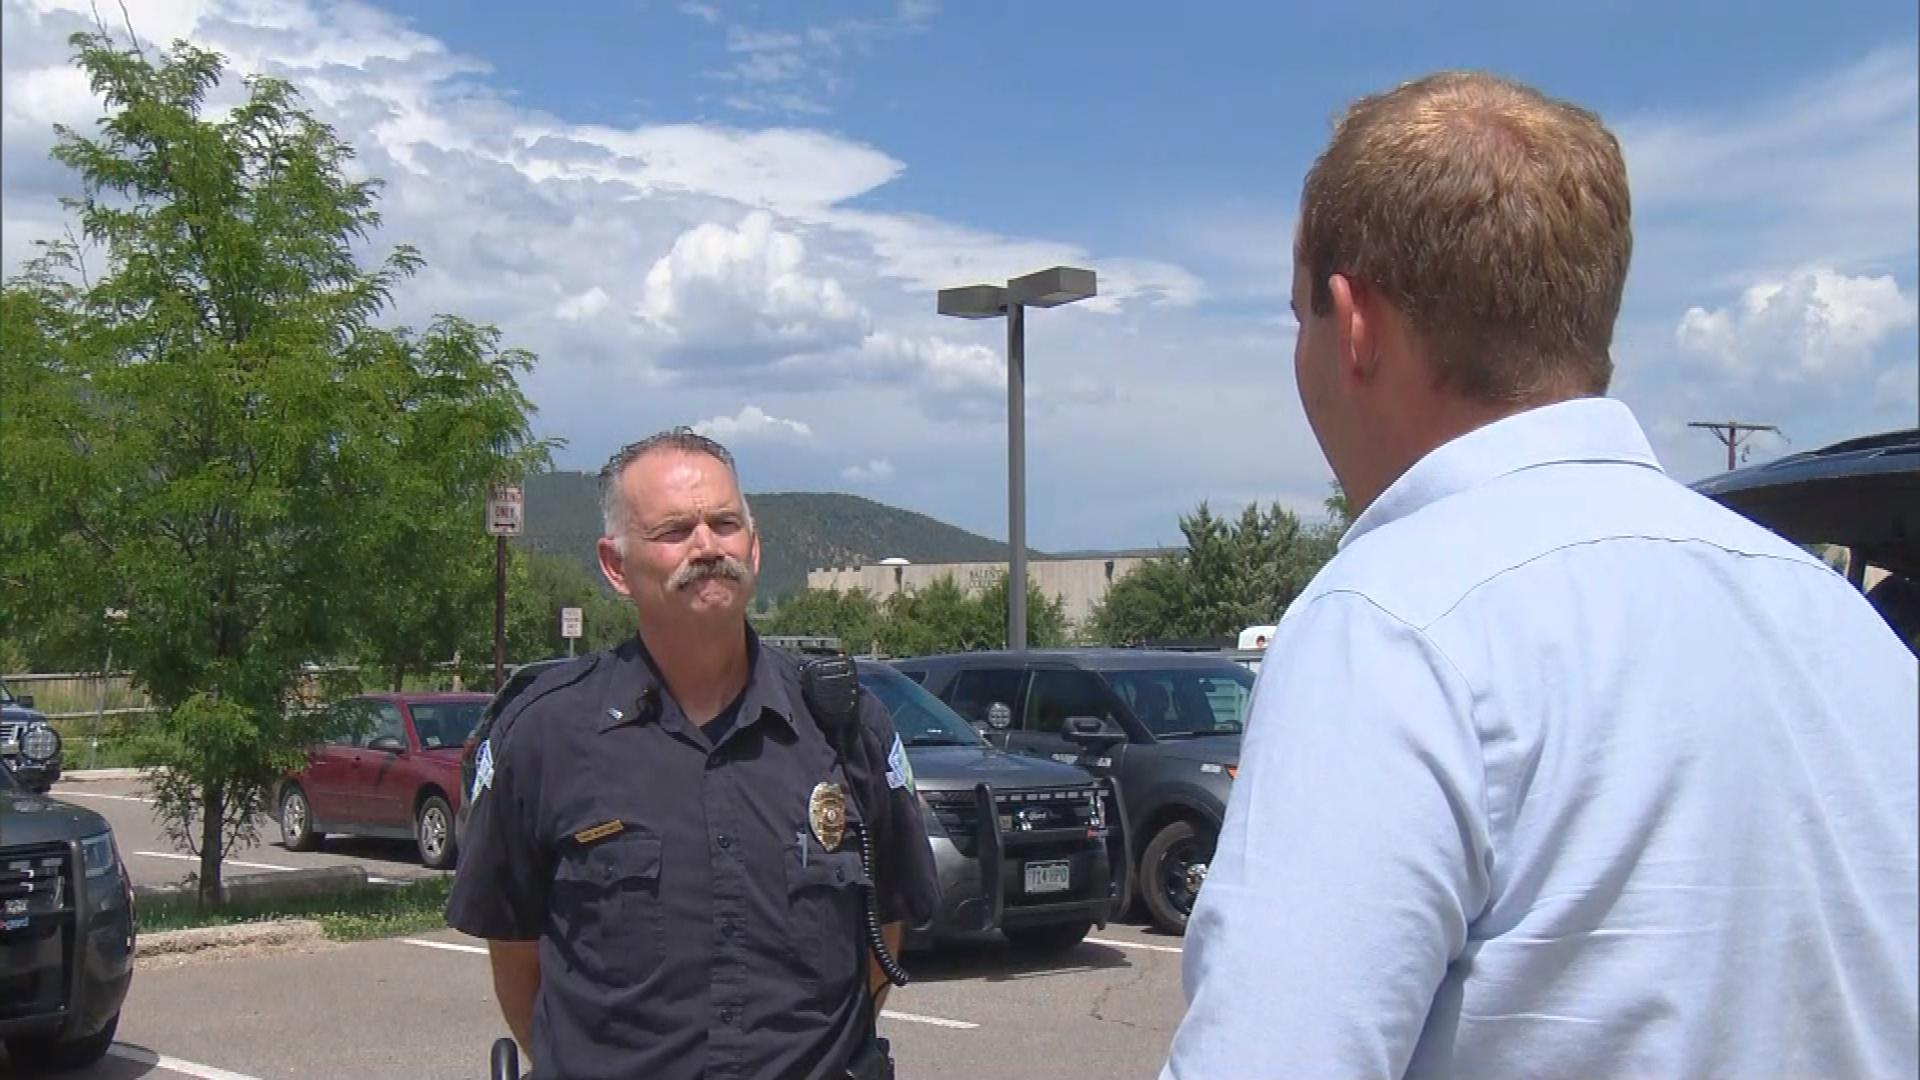 Chris Wurtsmith with the Carbondale Police Department is interviewed by CBS4's Matt Kroschel (credit: CBS)